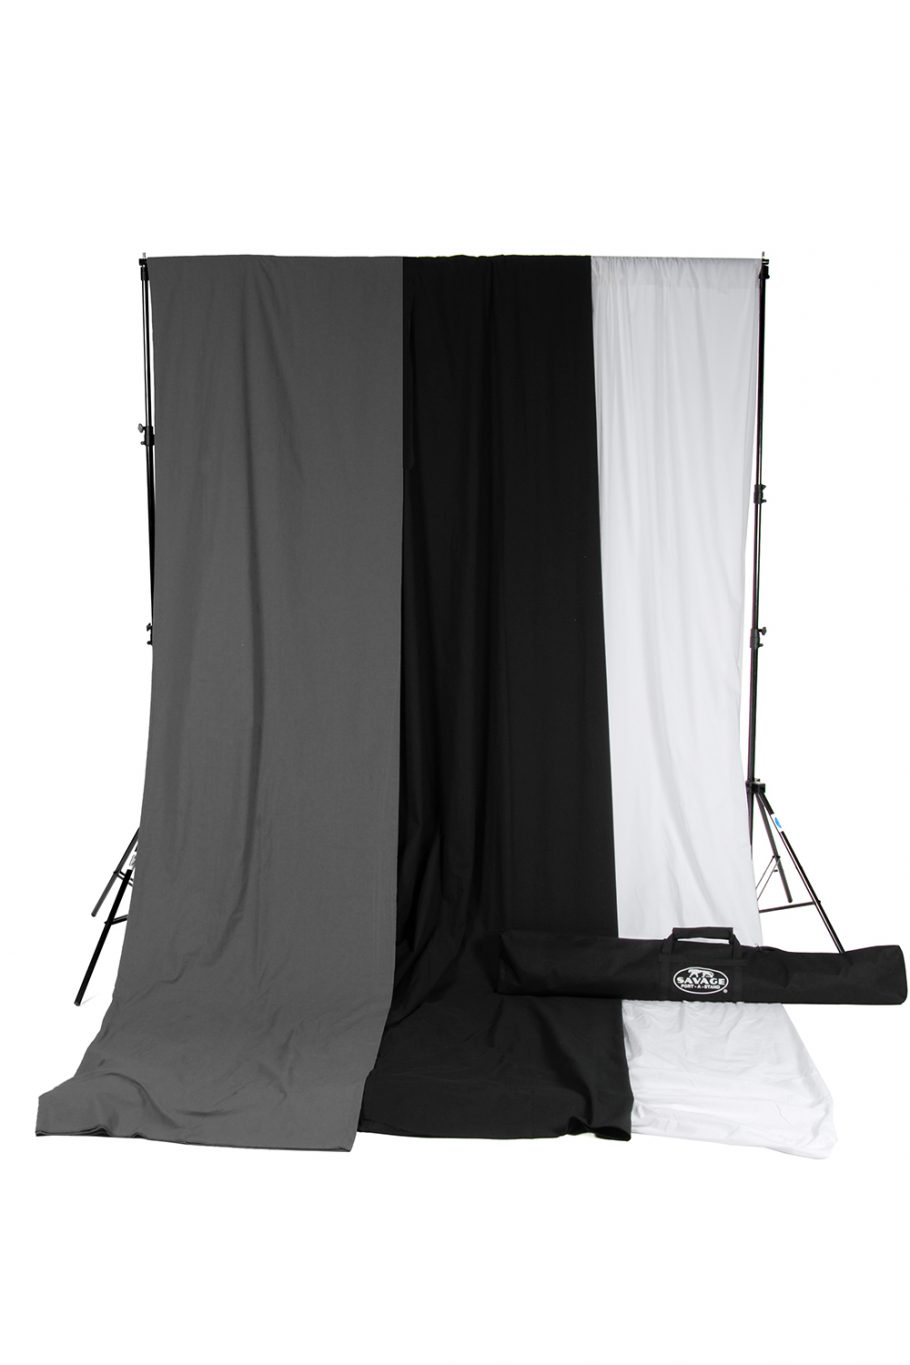 savage black white gray muslin backdrop kit